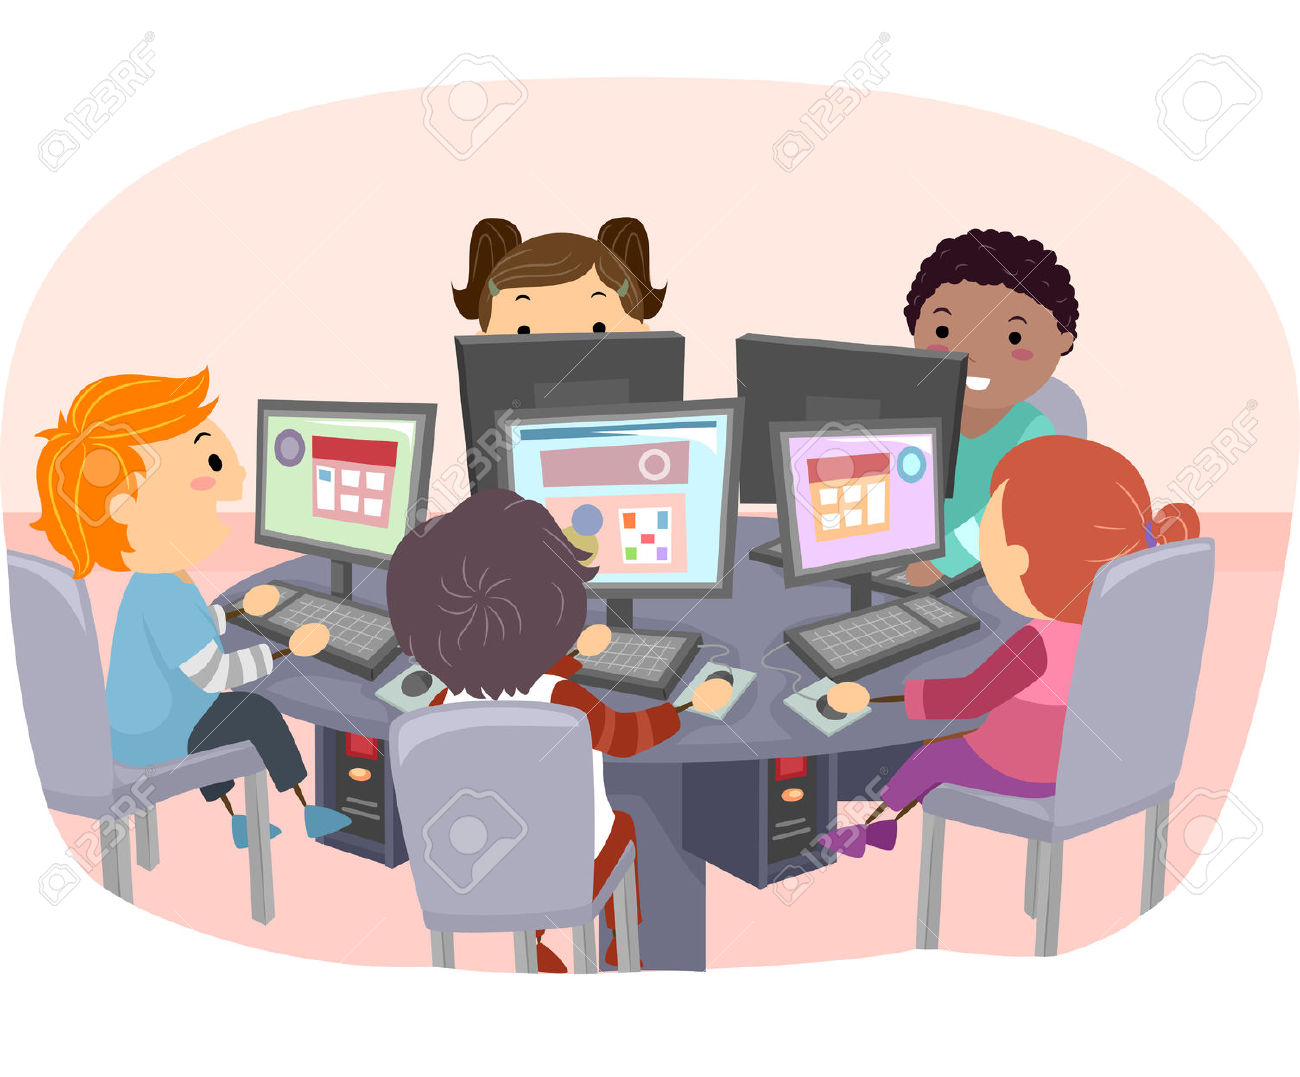 Students Using Computers Clipart.